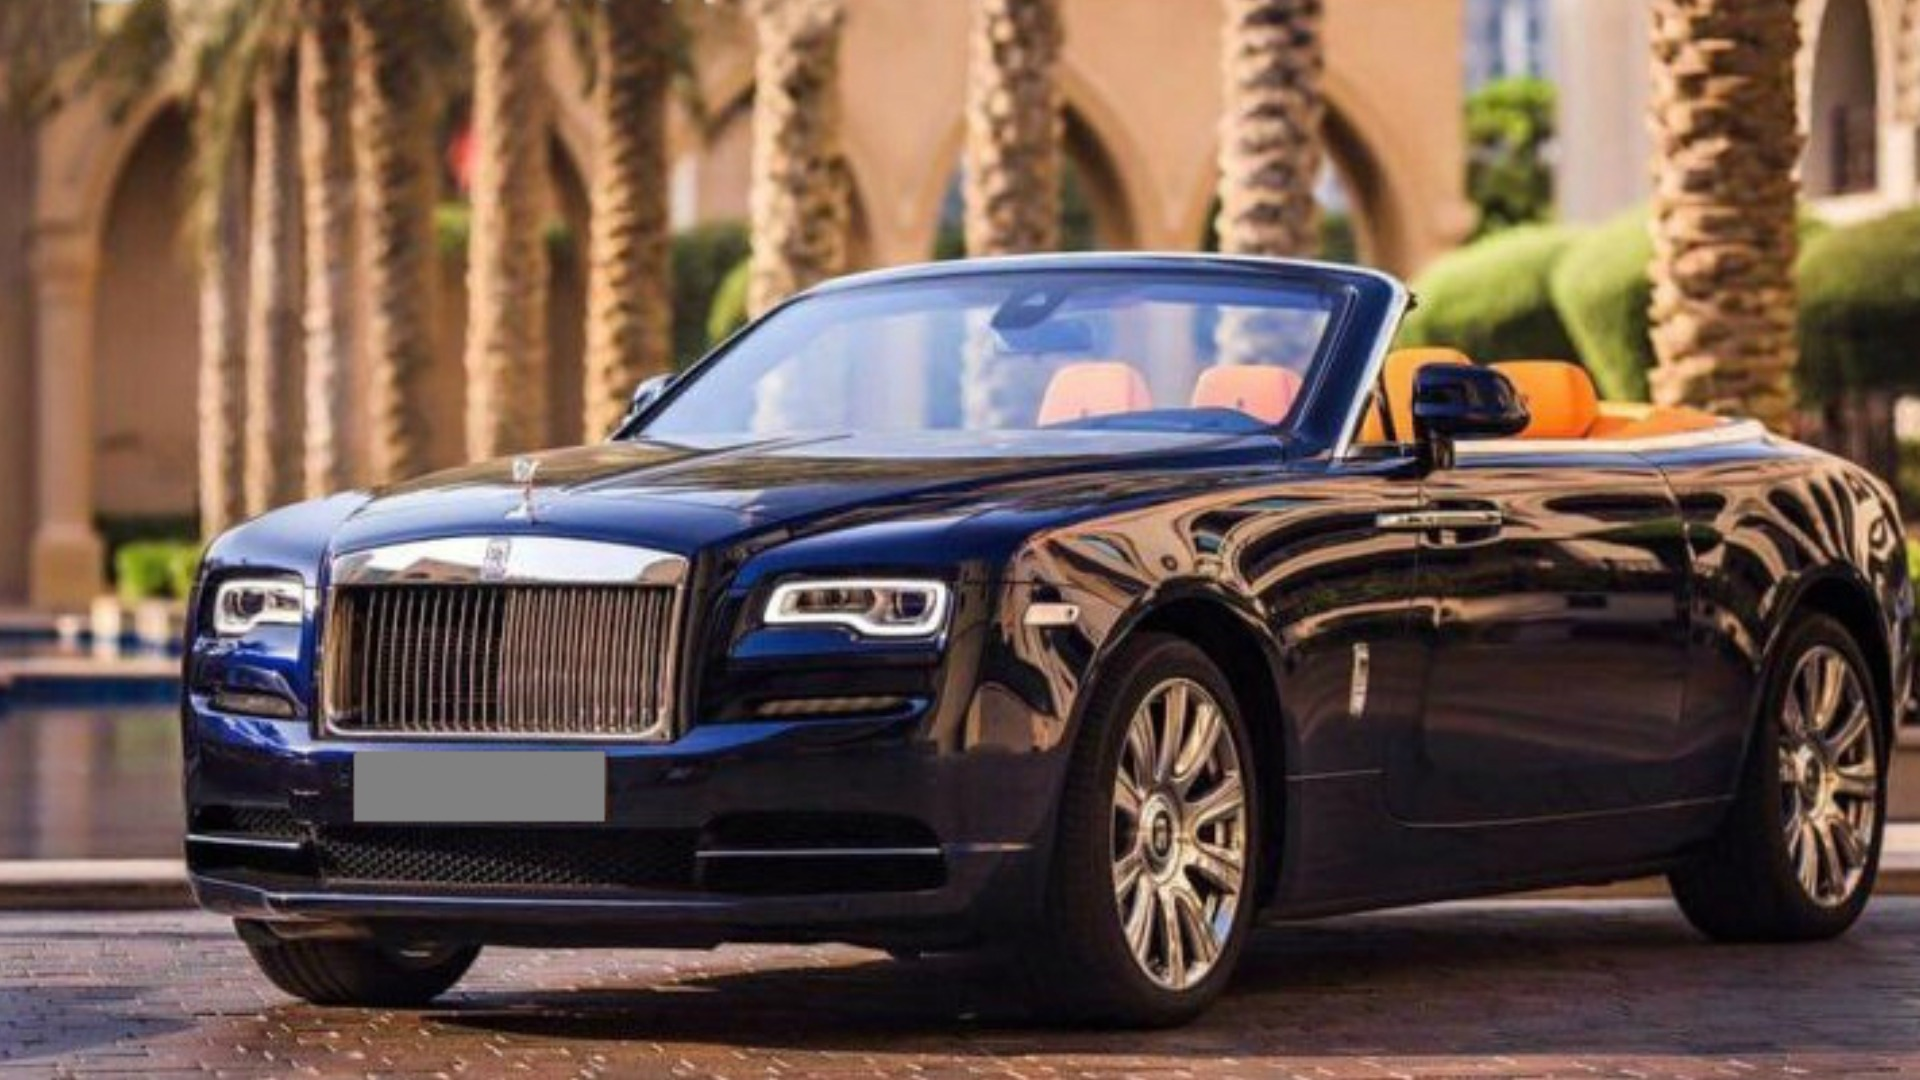 Sports Car Rental >> Lurento Expands Luxury And Sports Car Rental Business To Uae